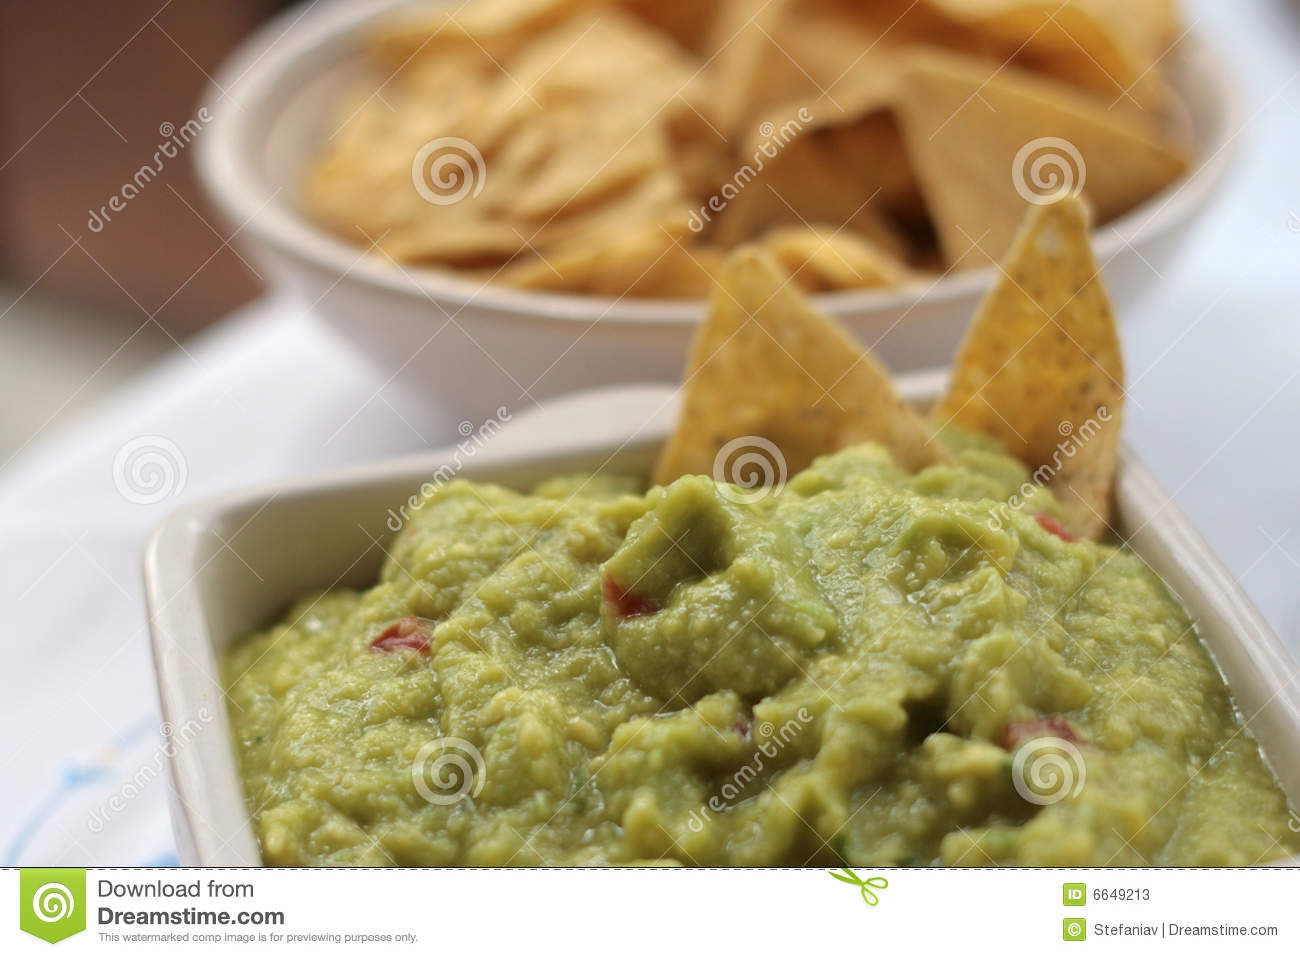 Cup of guacamole with blurred nachos in background